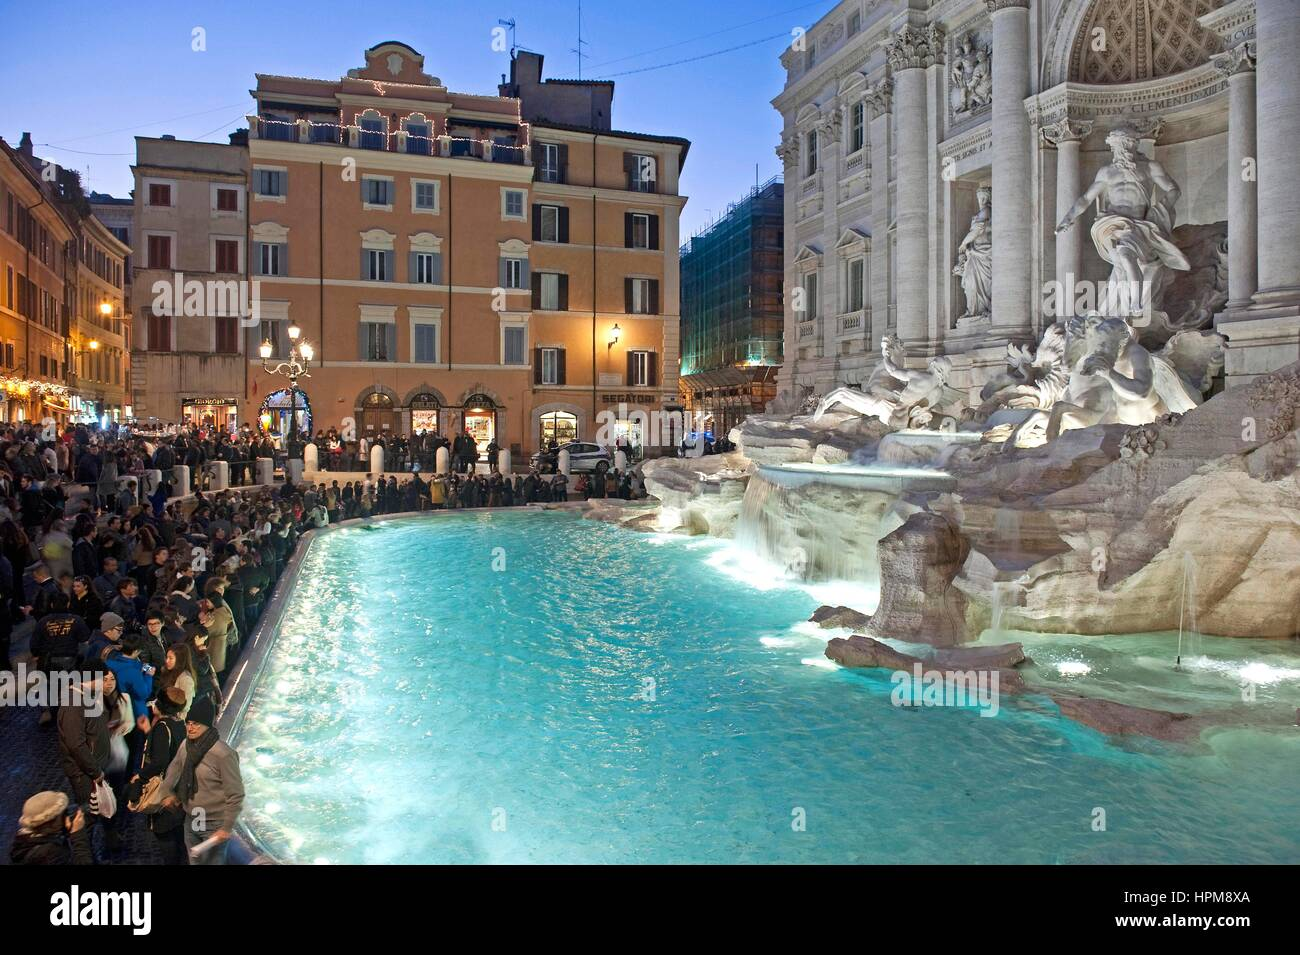 The Trevi Fountain in Rome, Italy, March 17, 2016    Credit © Fabio Mazzarella/Sintesi/Alamy Stock Photo - Stock Image